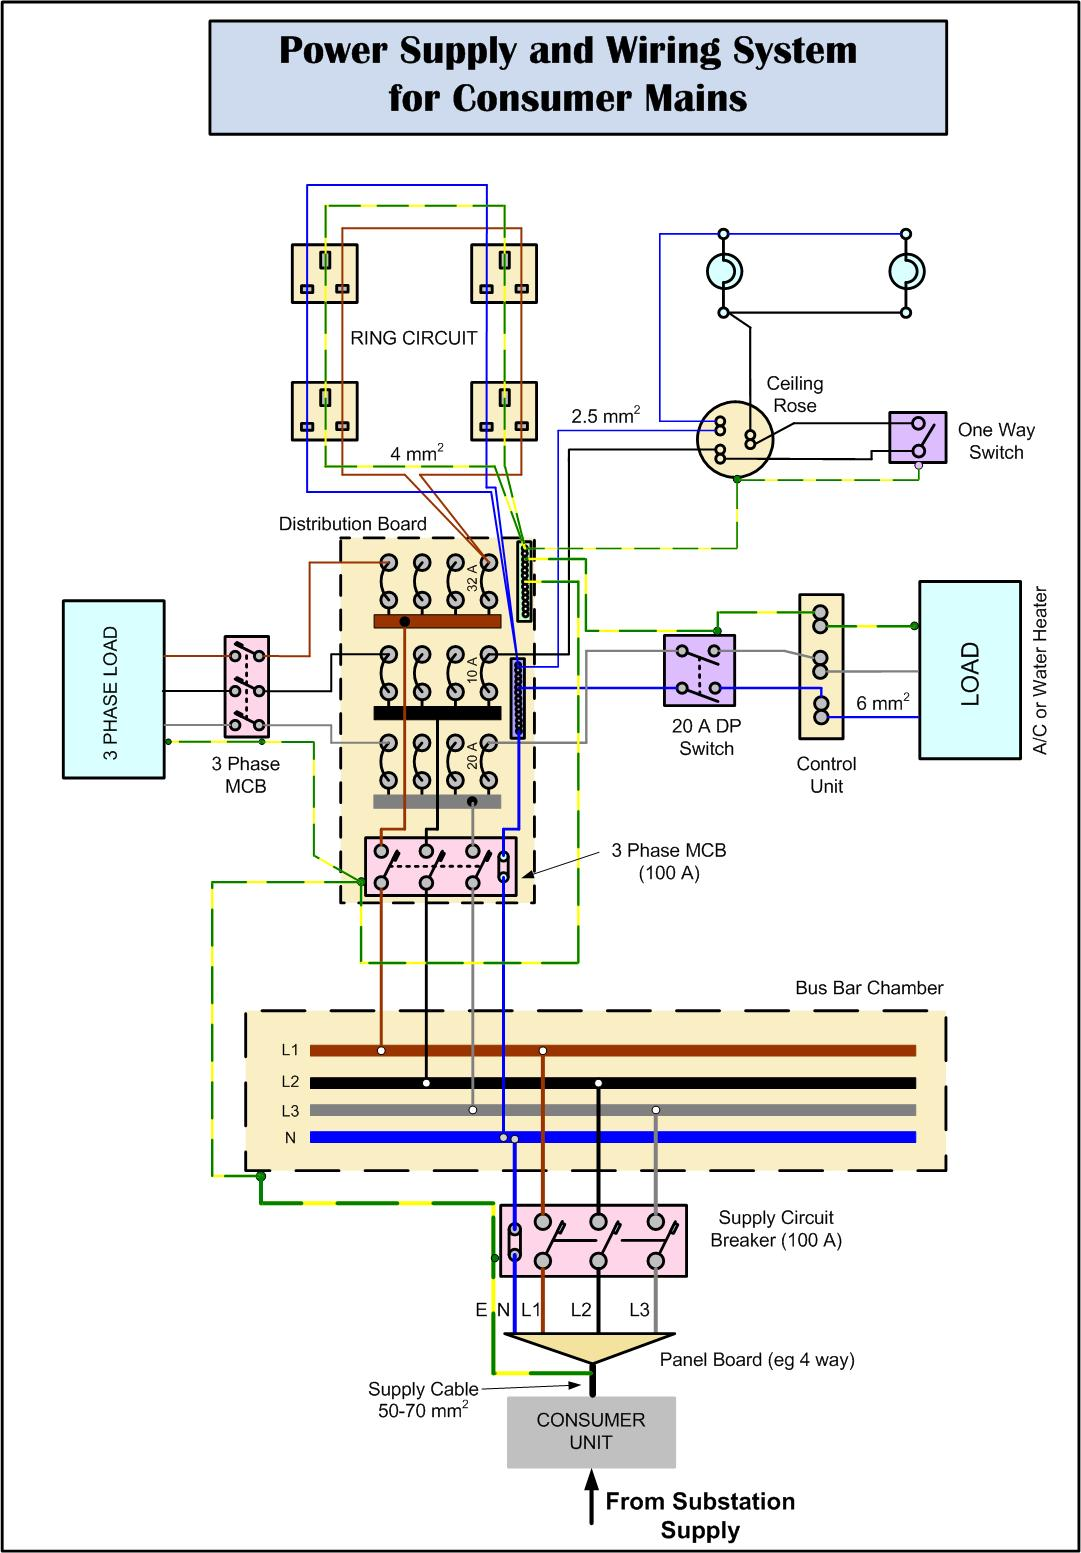 Mains Wiring Diagram Electrical Doorbell Uk File Consumer Wikimedia Commons Rh Org Caravan